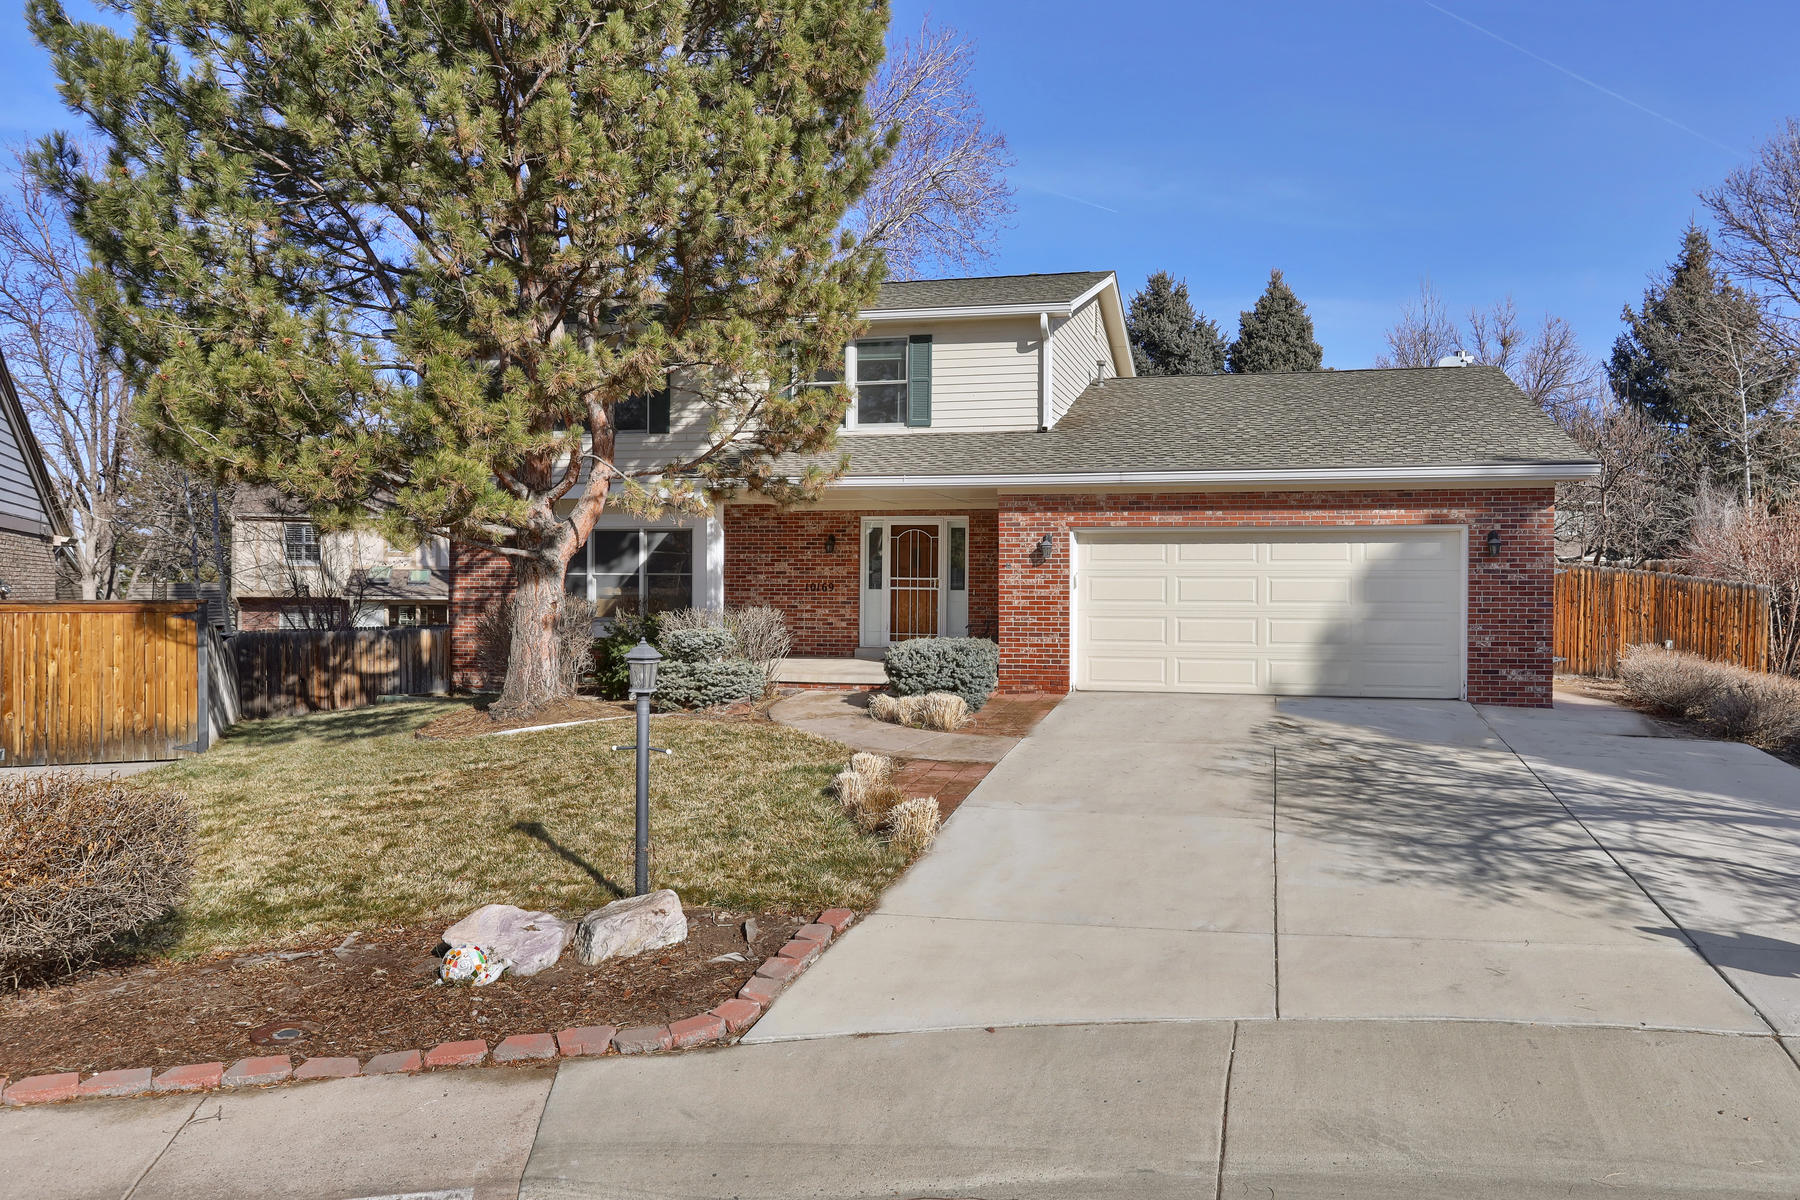 Single Family Homes for Active at Welcome home! This traditional Orchard Gate home sits at the end of a cul-de-sac 10169 E Lake Place Englewood, Colorado 80111 United States